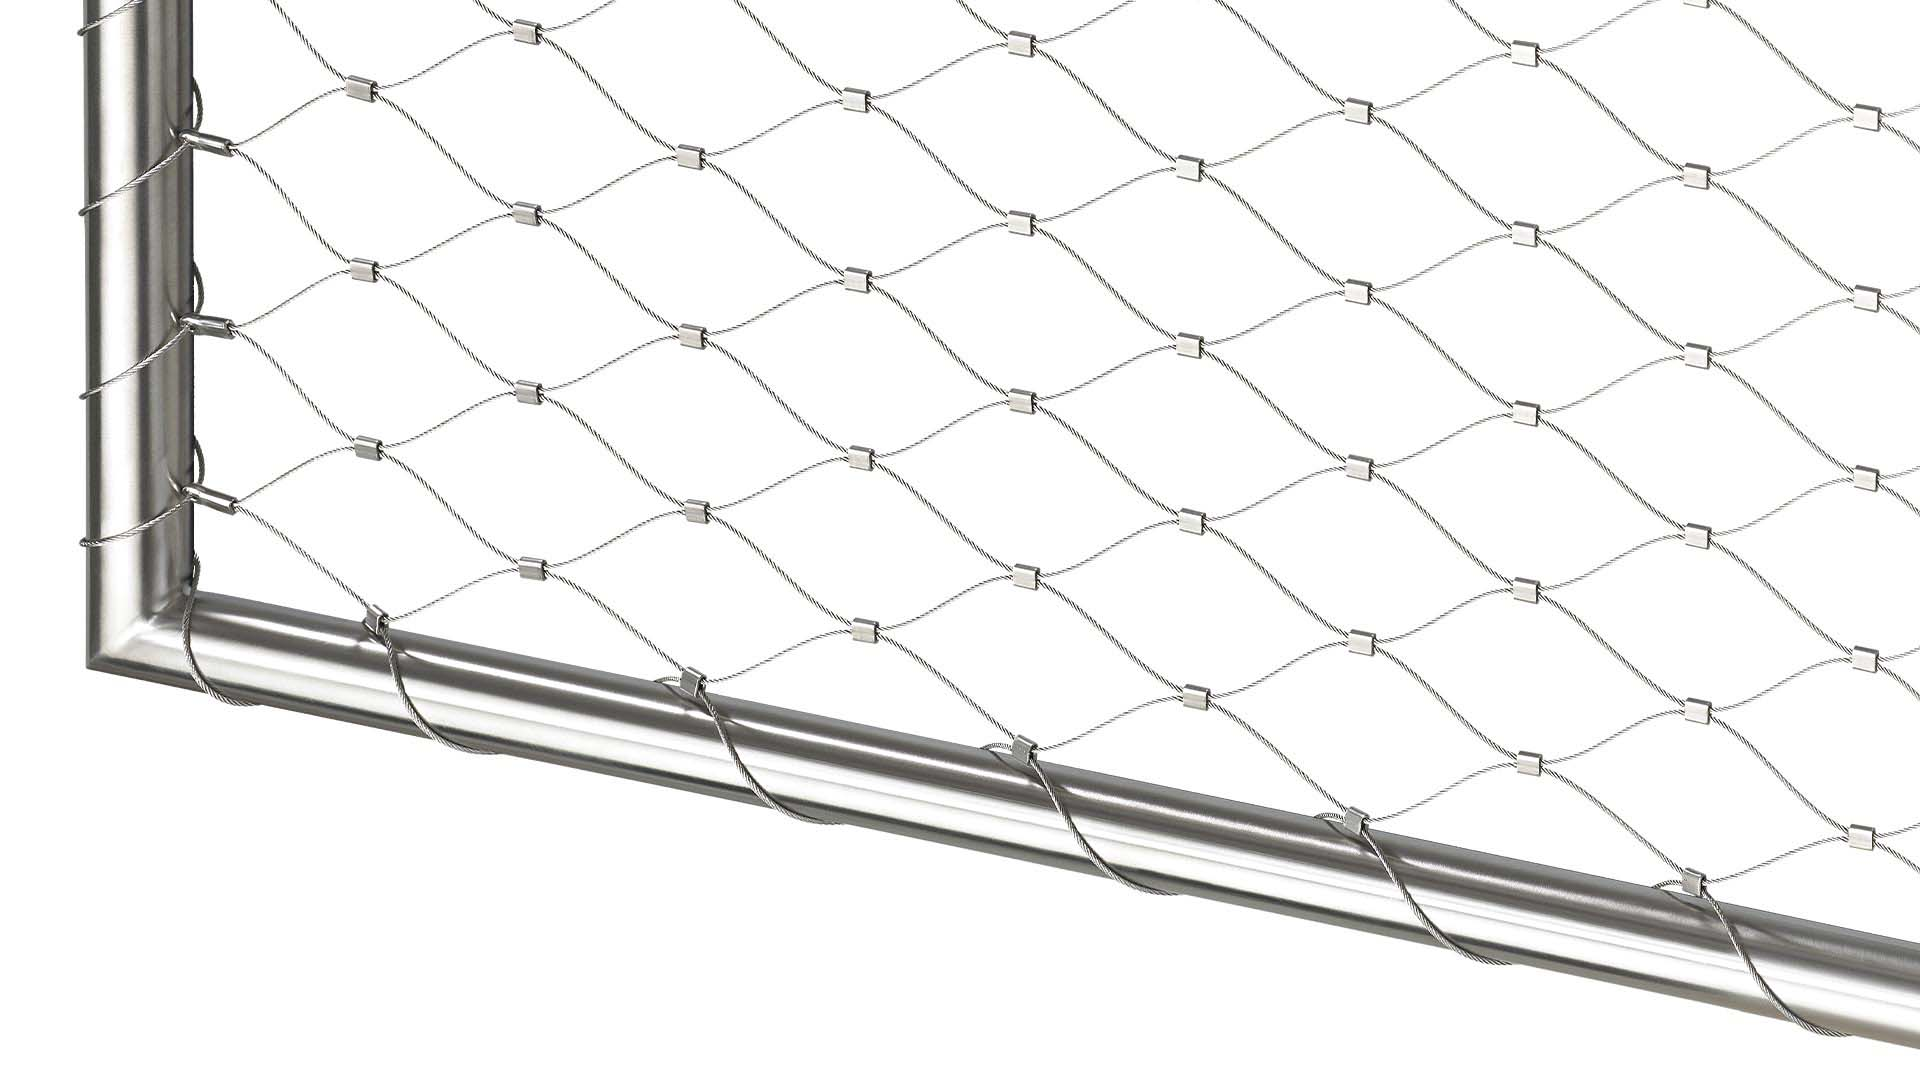 Stainless Steelframe with webnet wire mesh